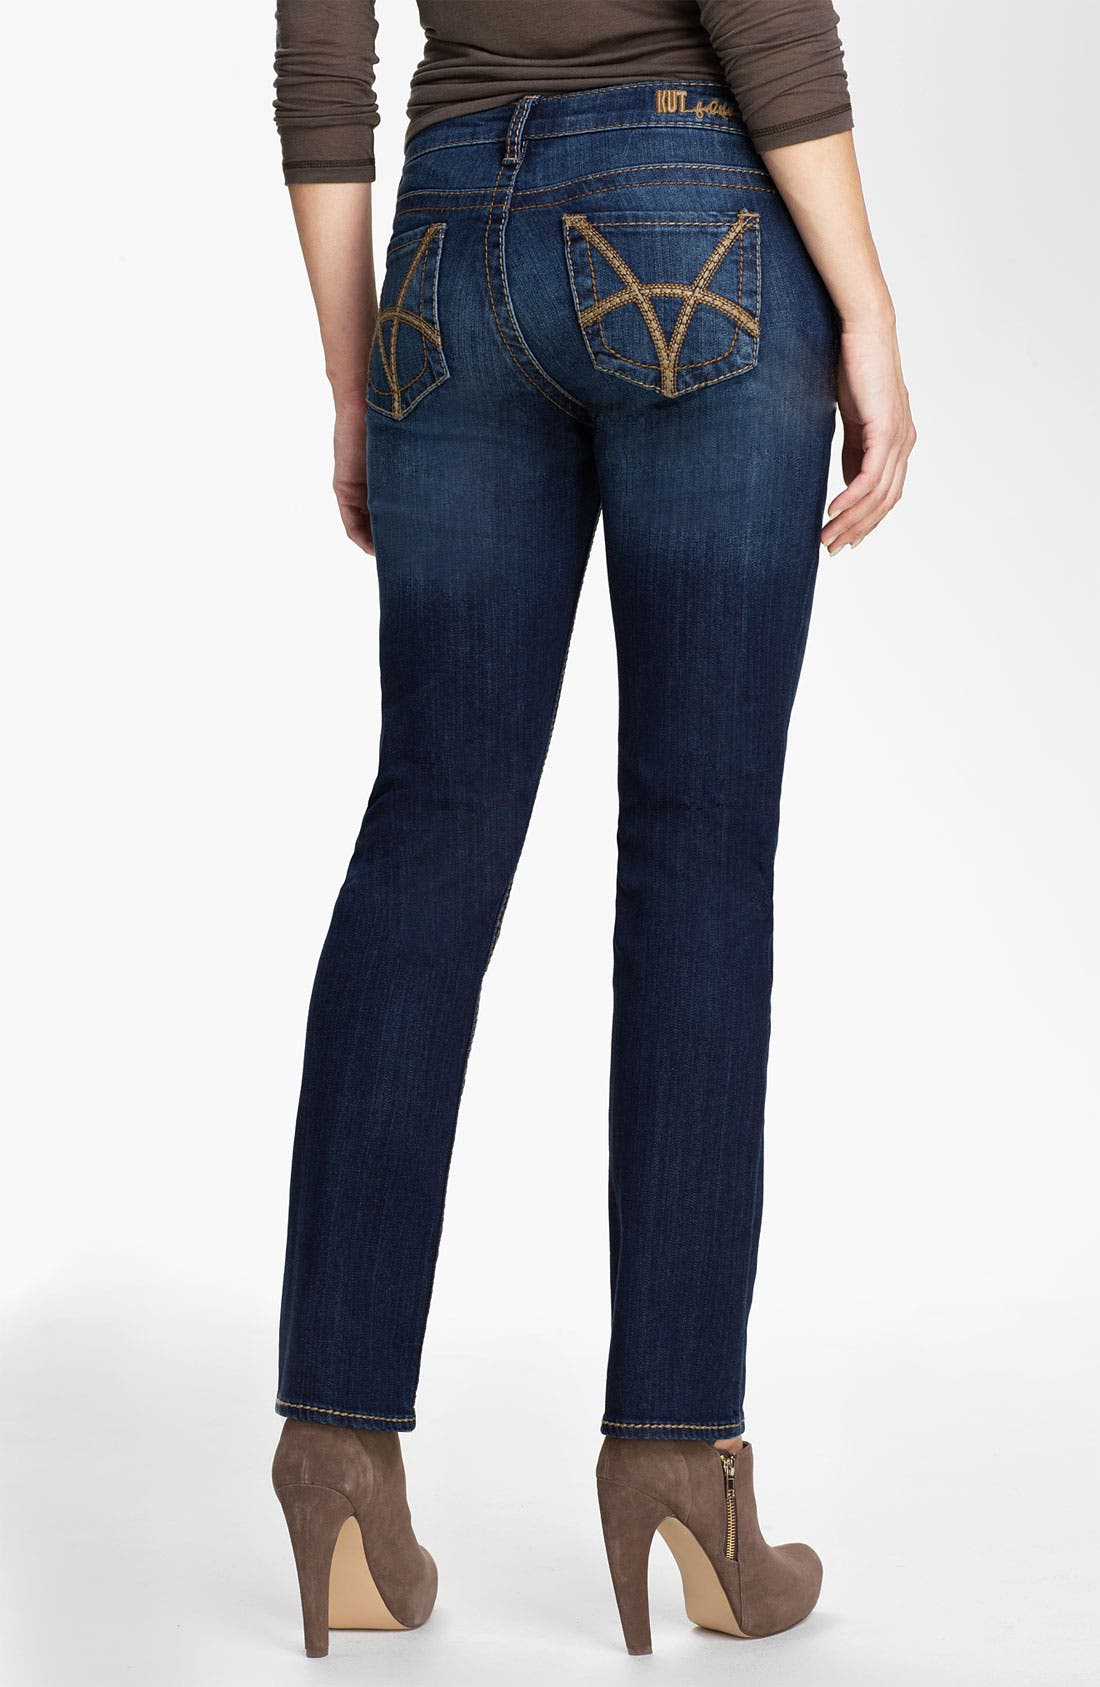 Alternate Image 2  - KUT from the Kloth 'Stevie' Straight Leg Jeans (Gratitude) (Online Only)